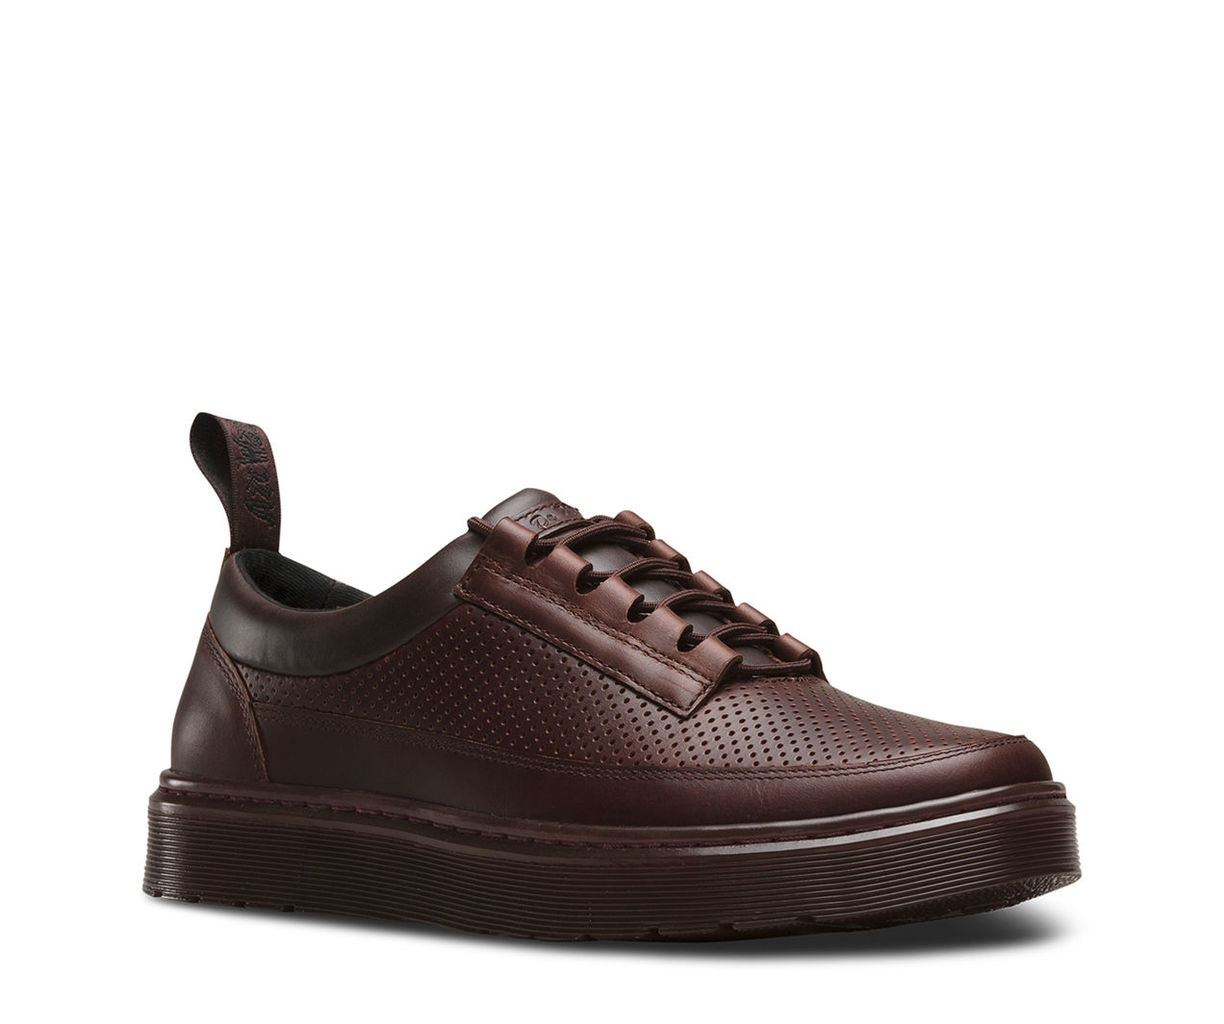 Reuban Shoe